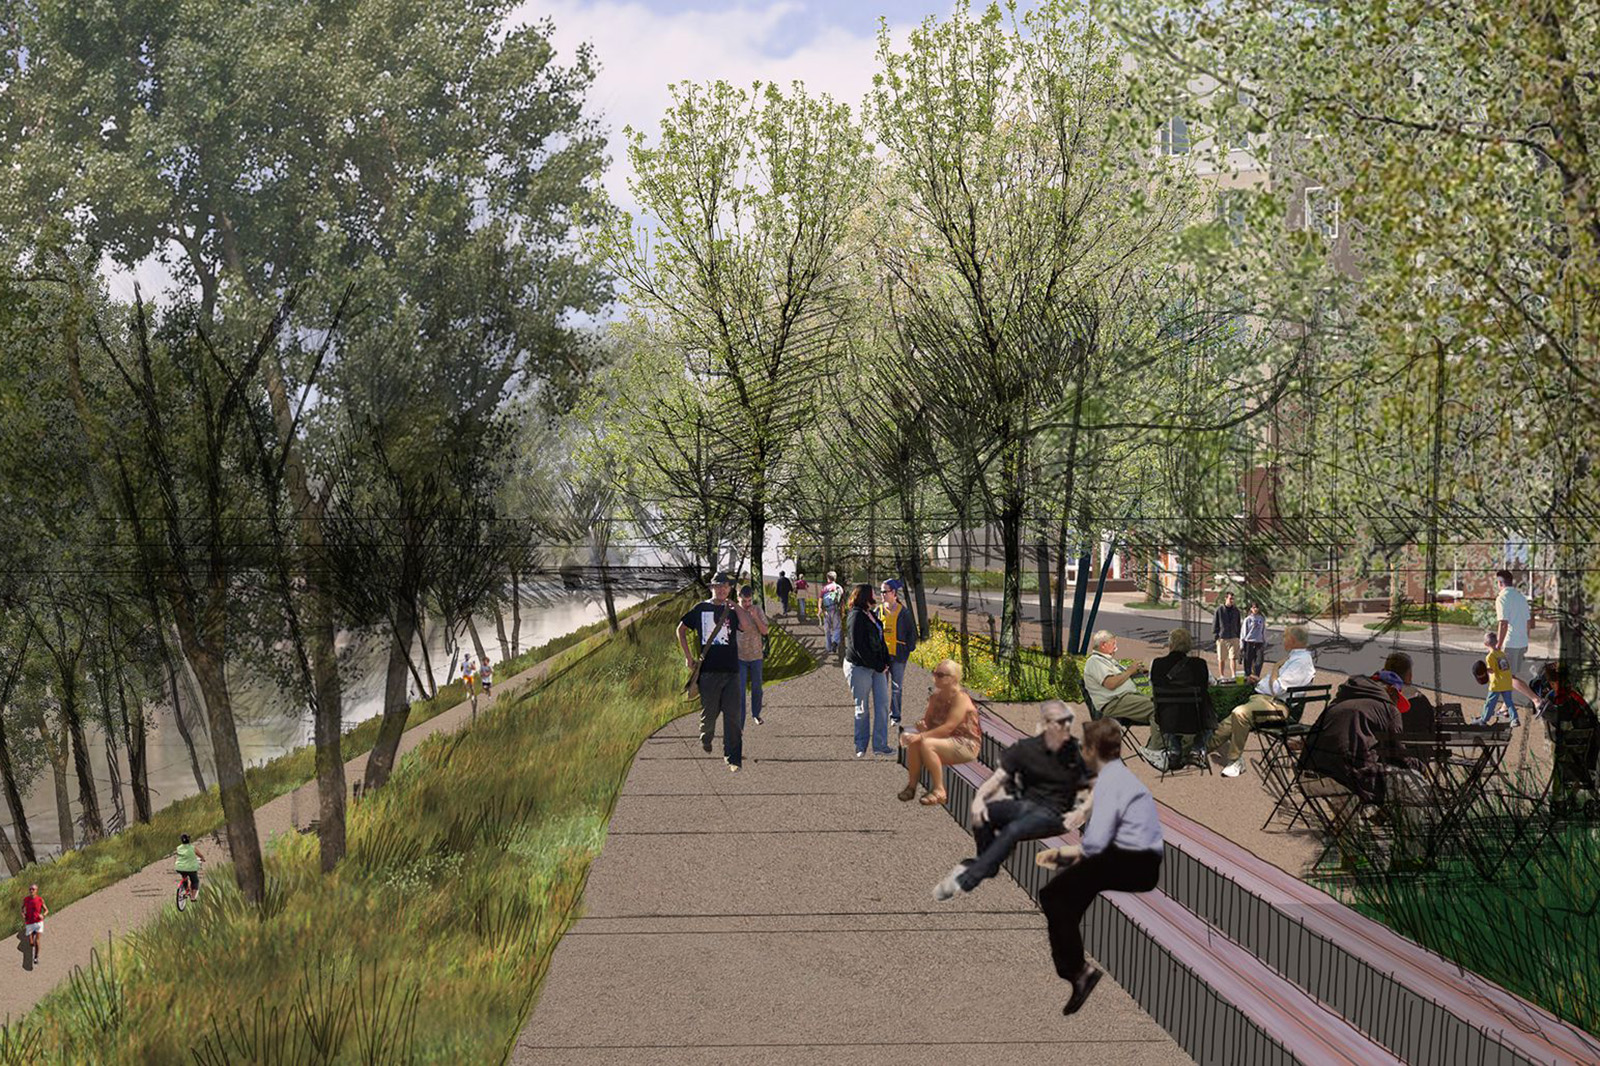 RiNo Infrastructure Part 6: River North Promenade